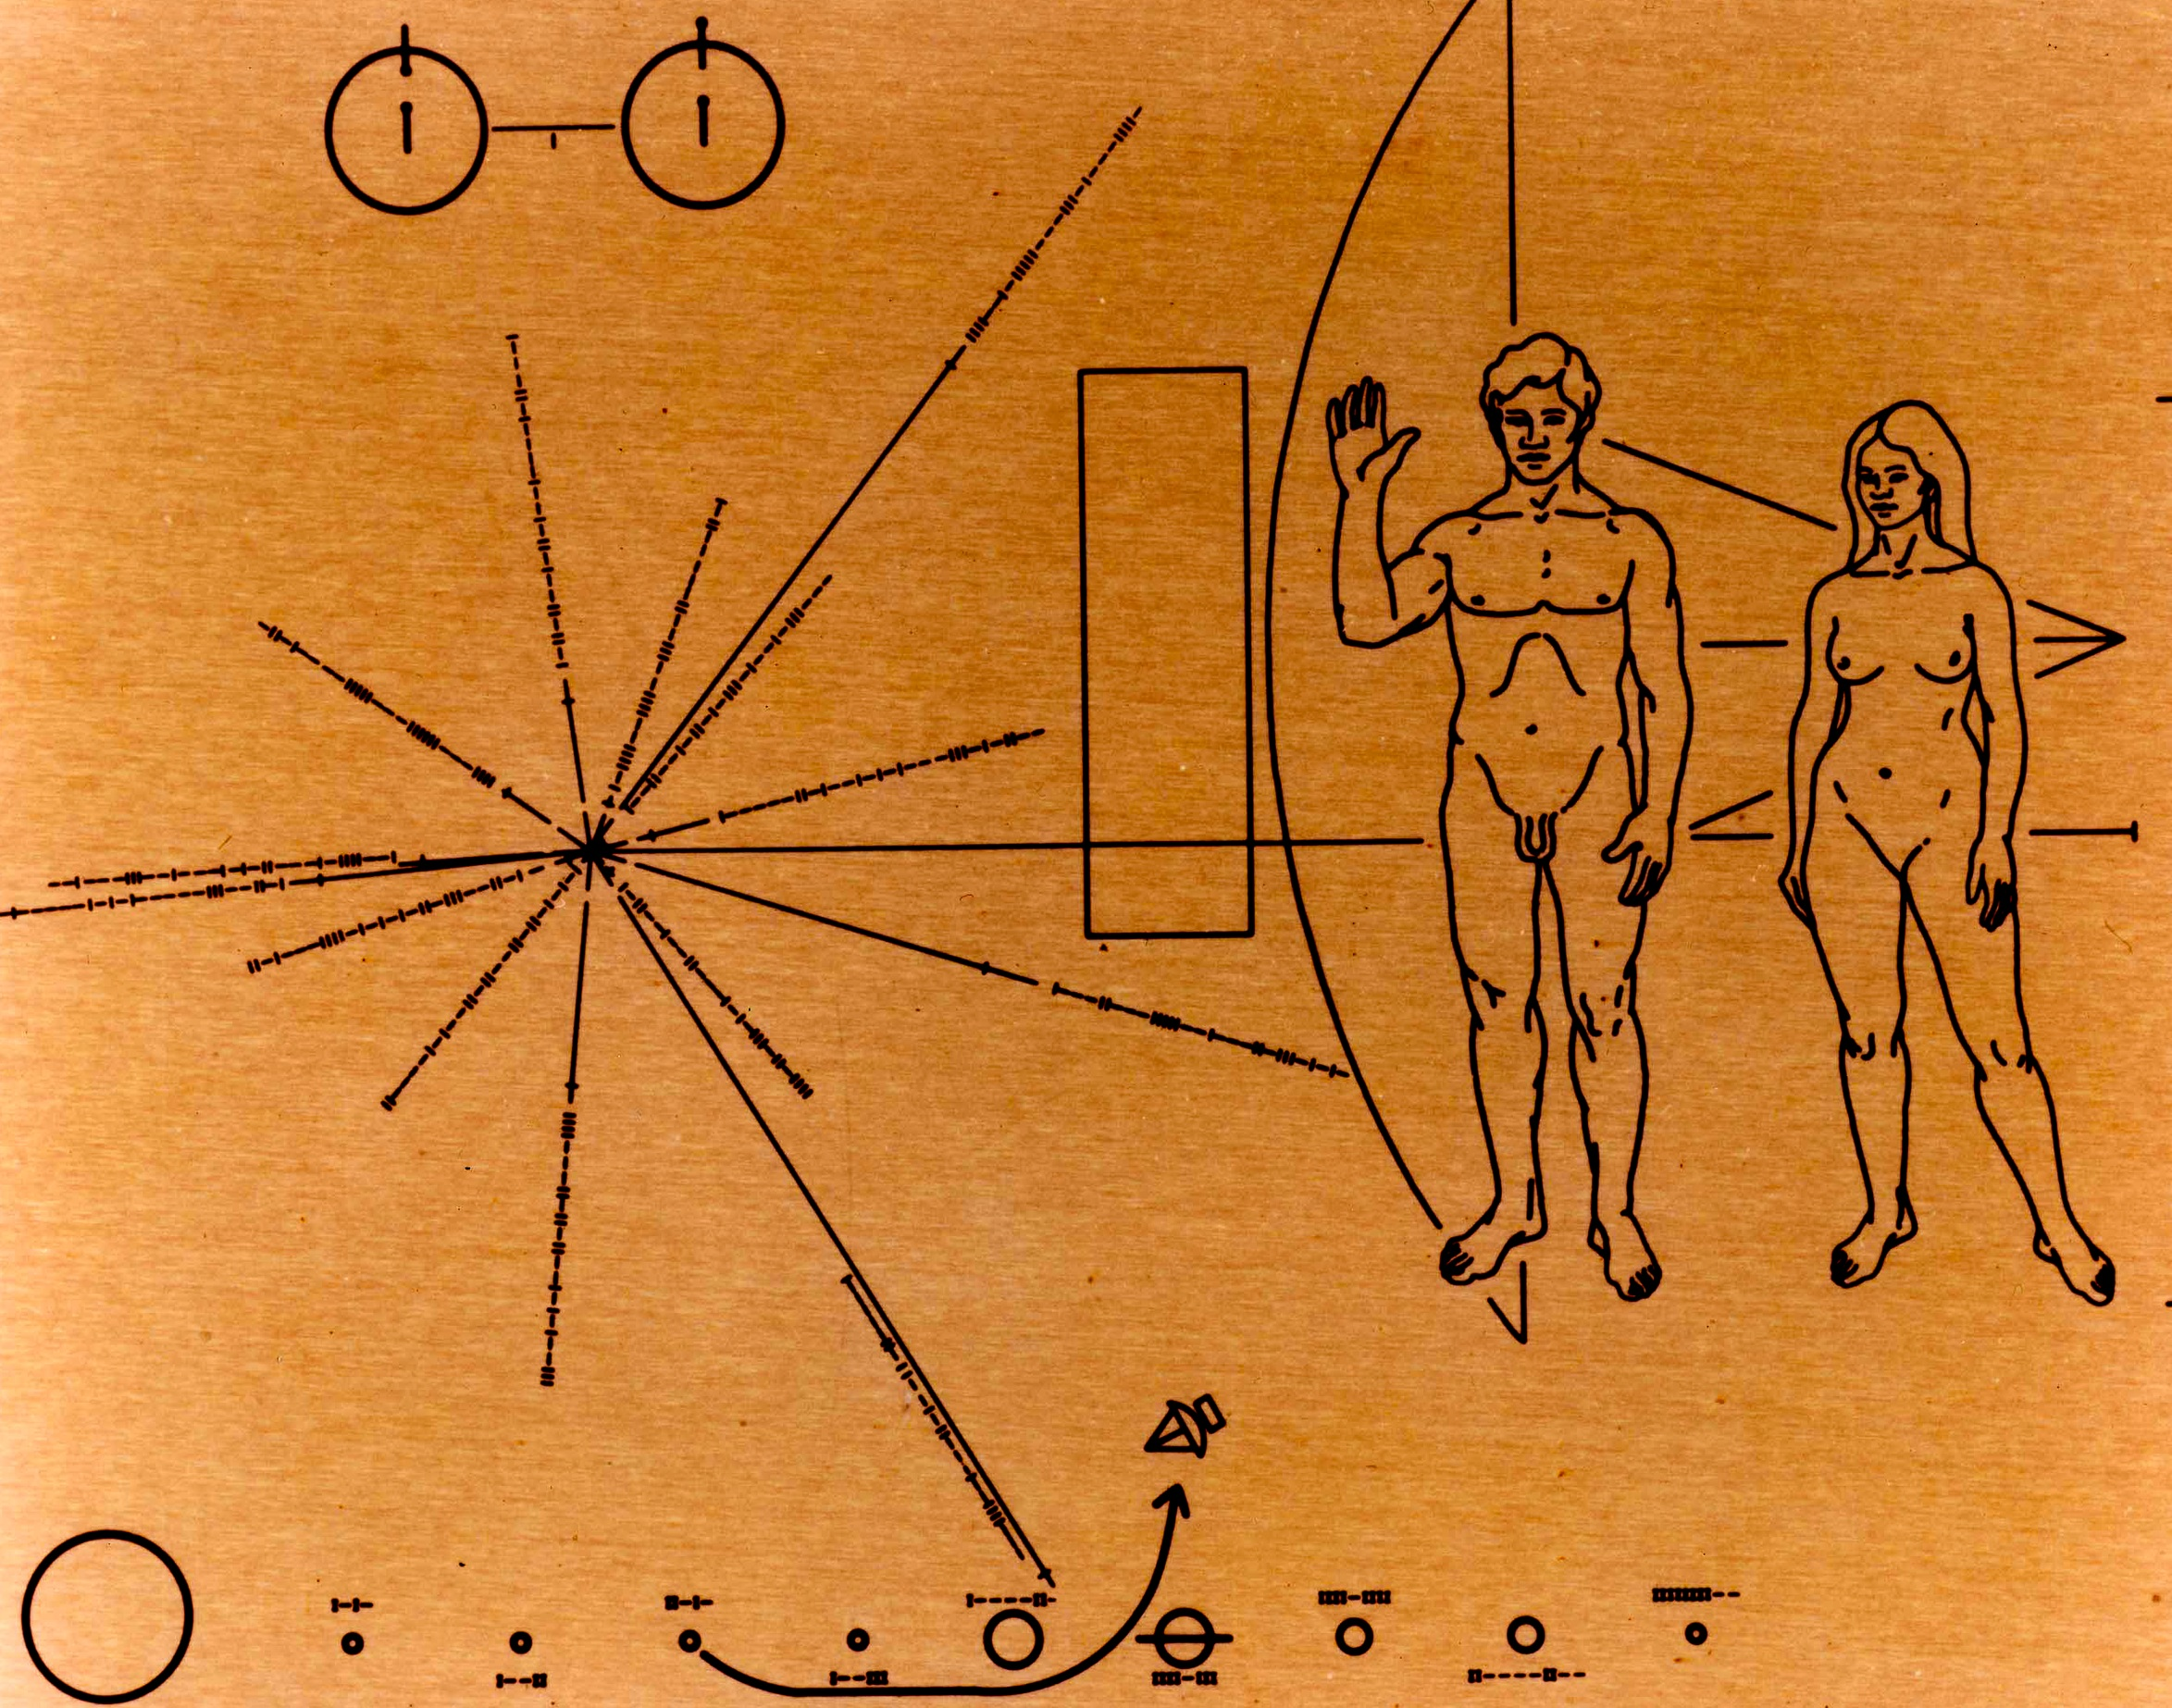 Pioneer Plaque, which is reproduced in the Science Museum 'Exploring Space' Gallery. (NASA)